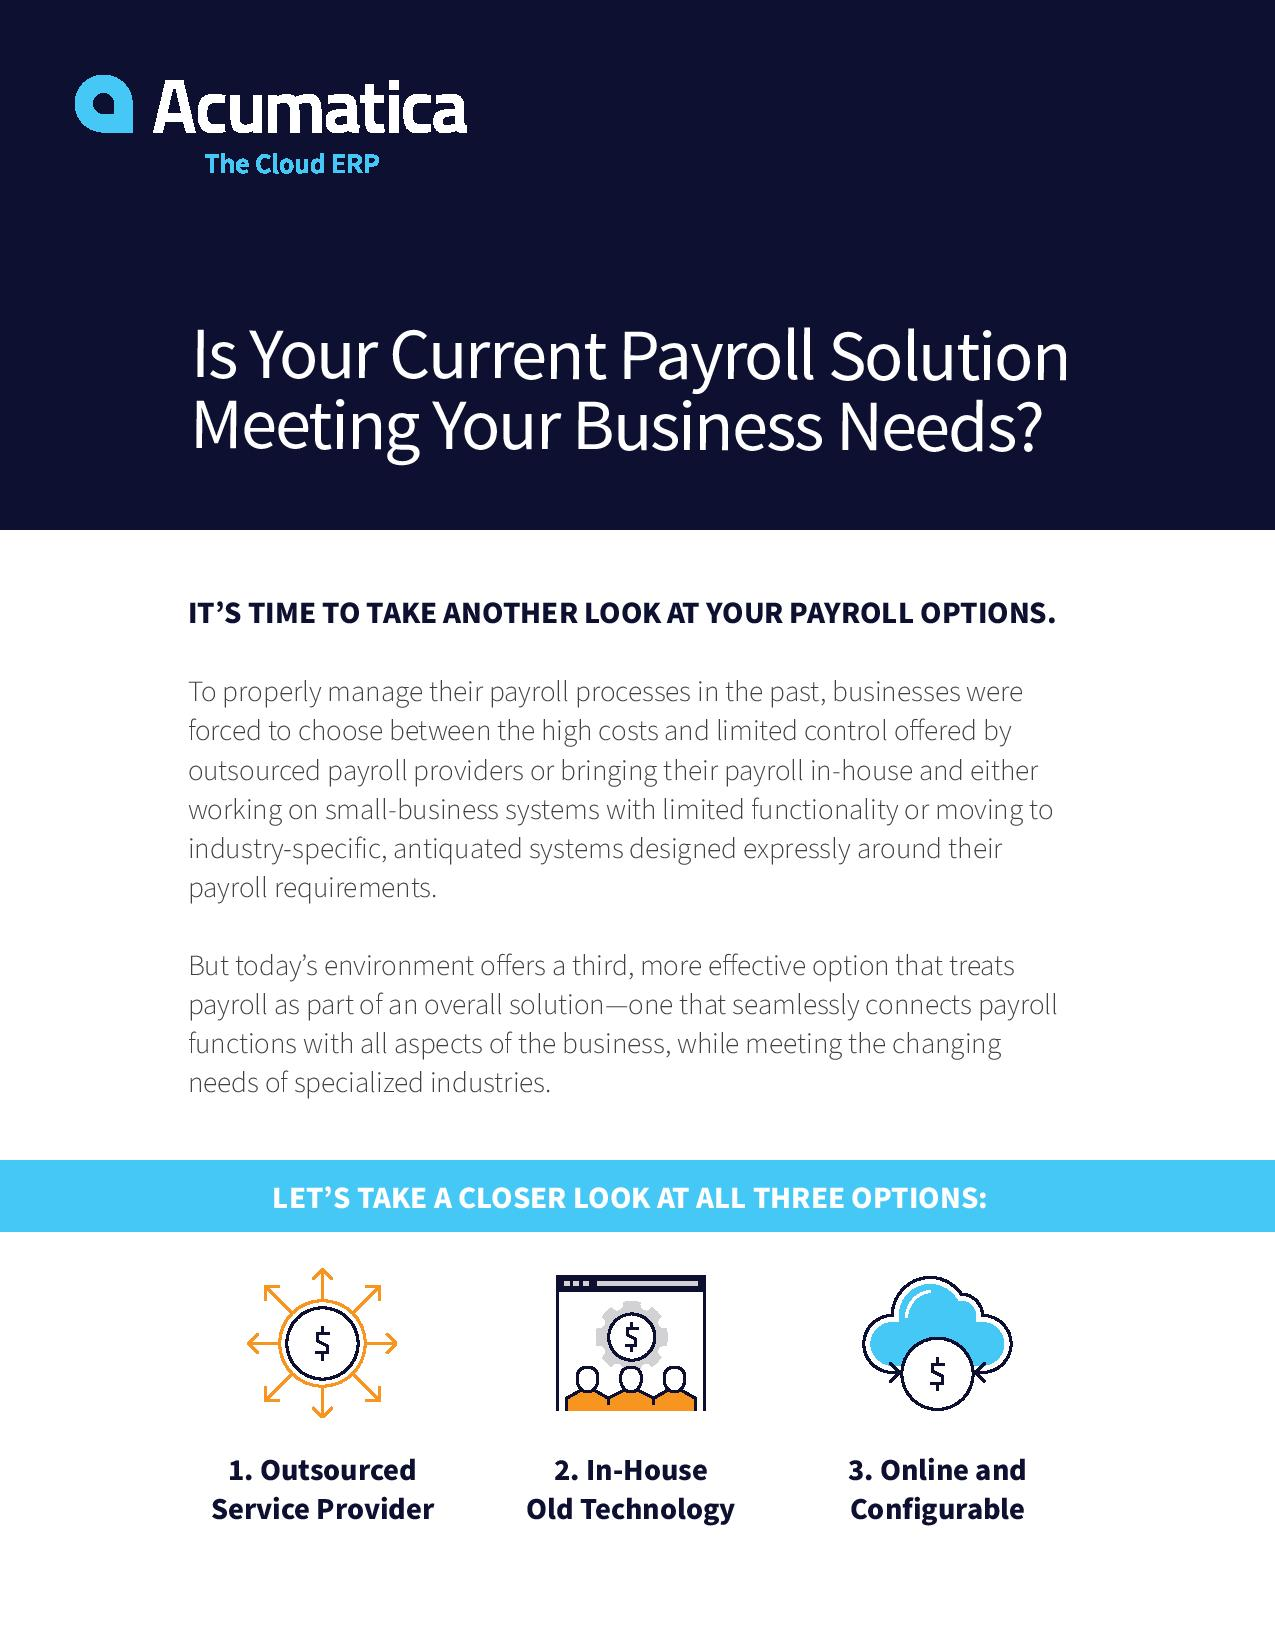 Seamless Payroll Solutions: Take Another Look at Your Options, page 0